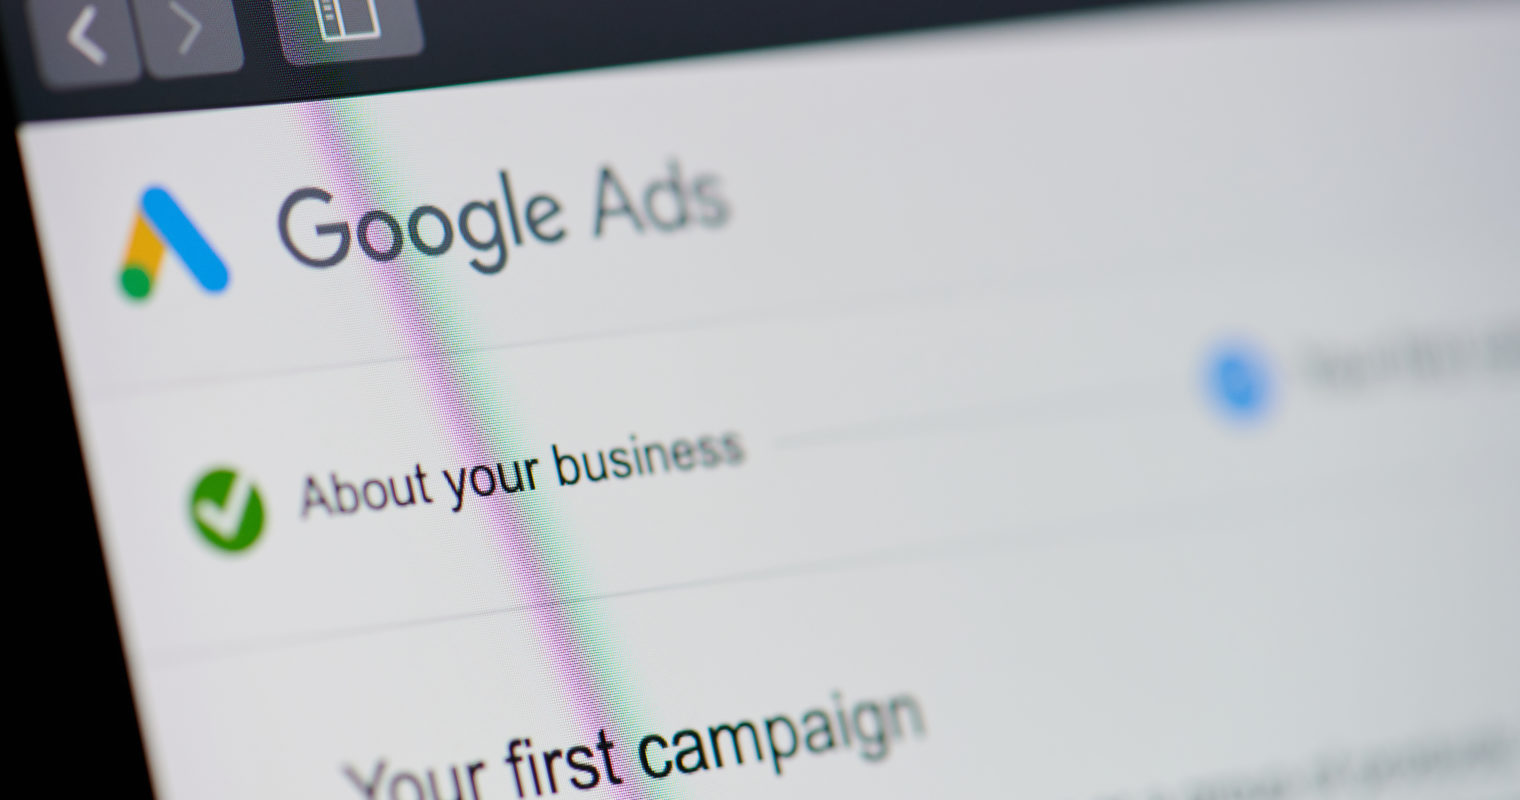 Google Ads Shortens Business Identity Verification Time